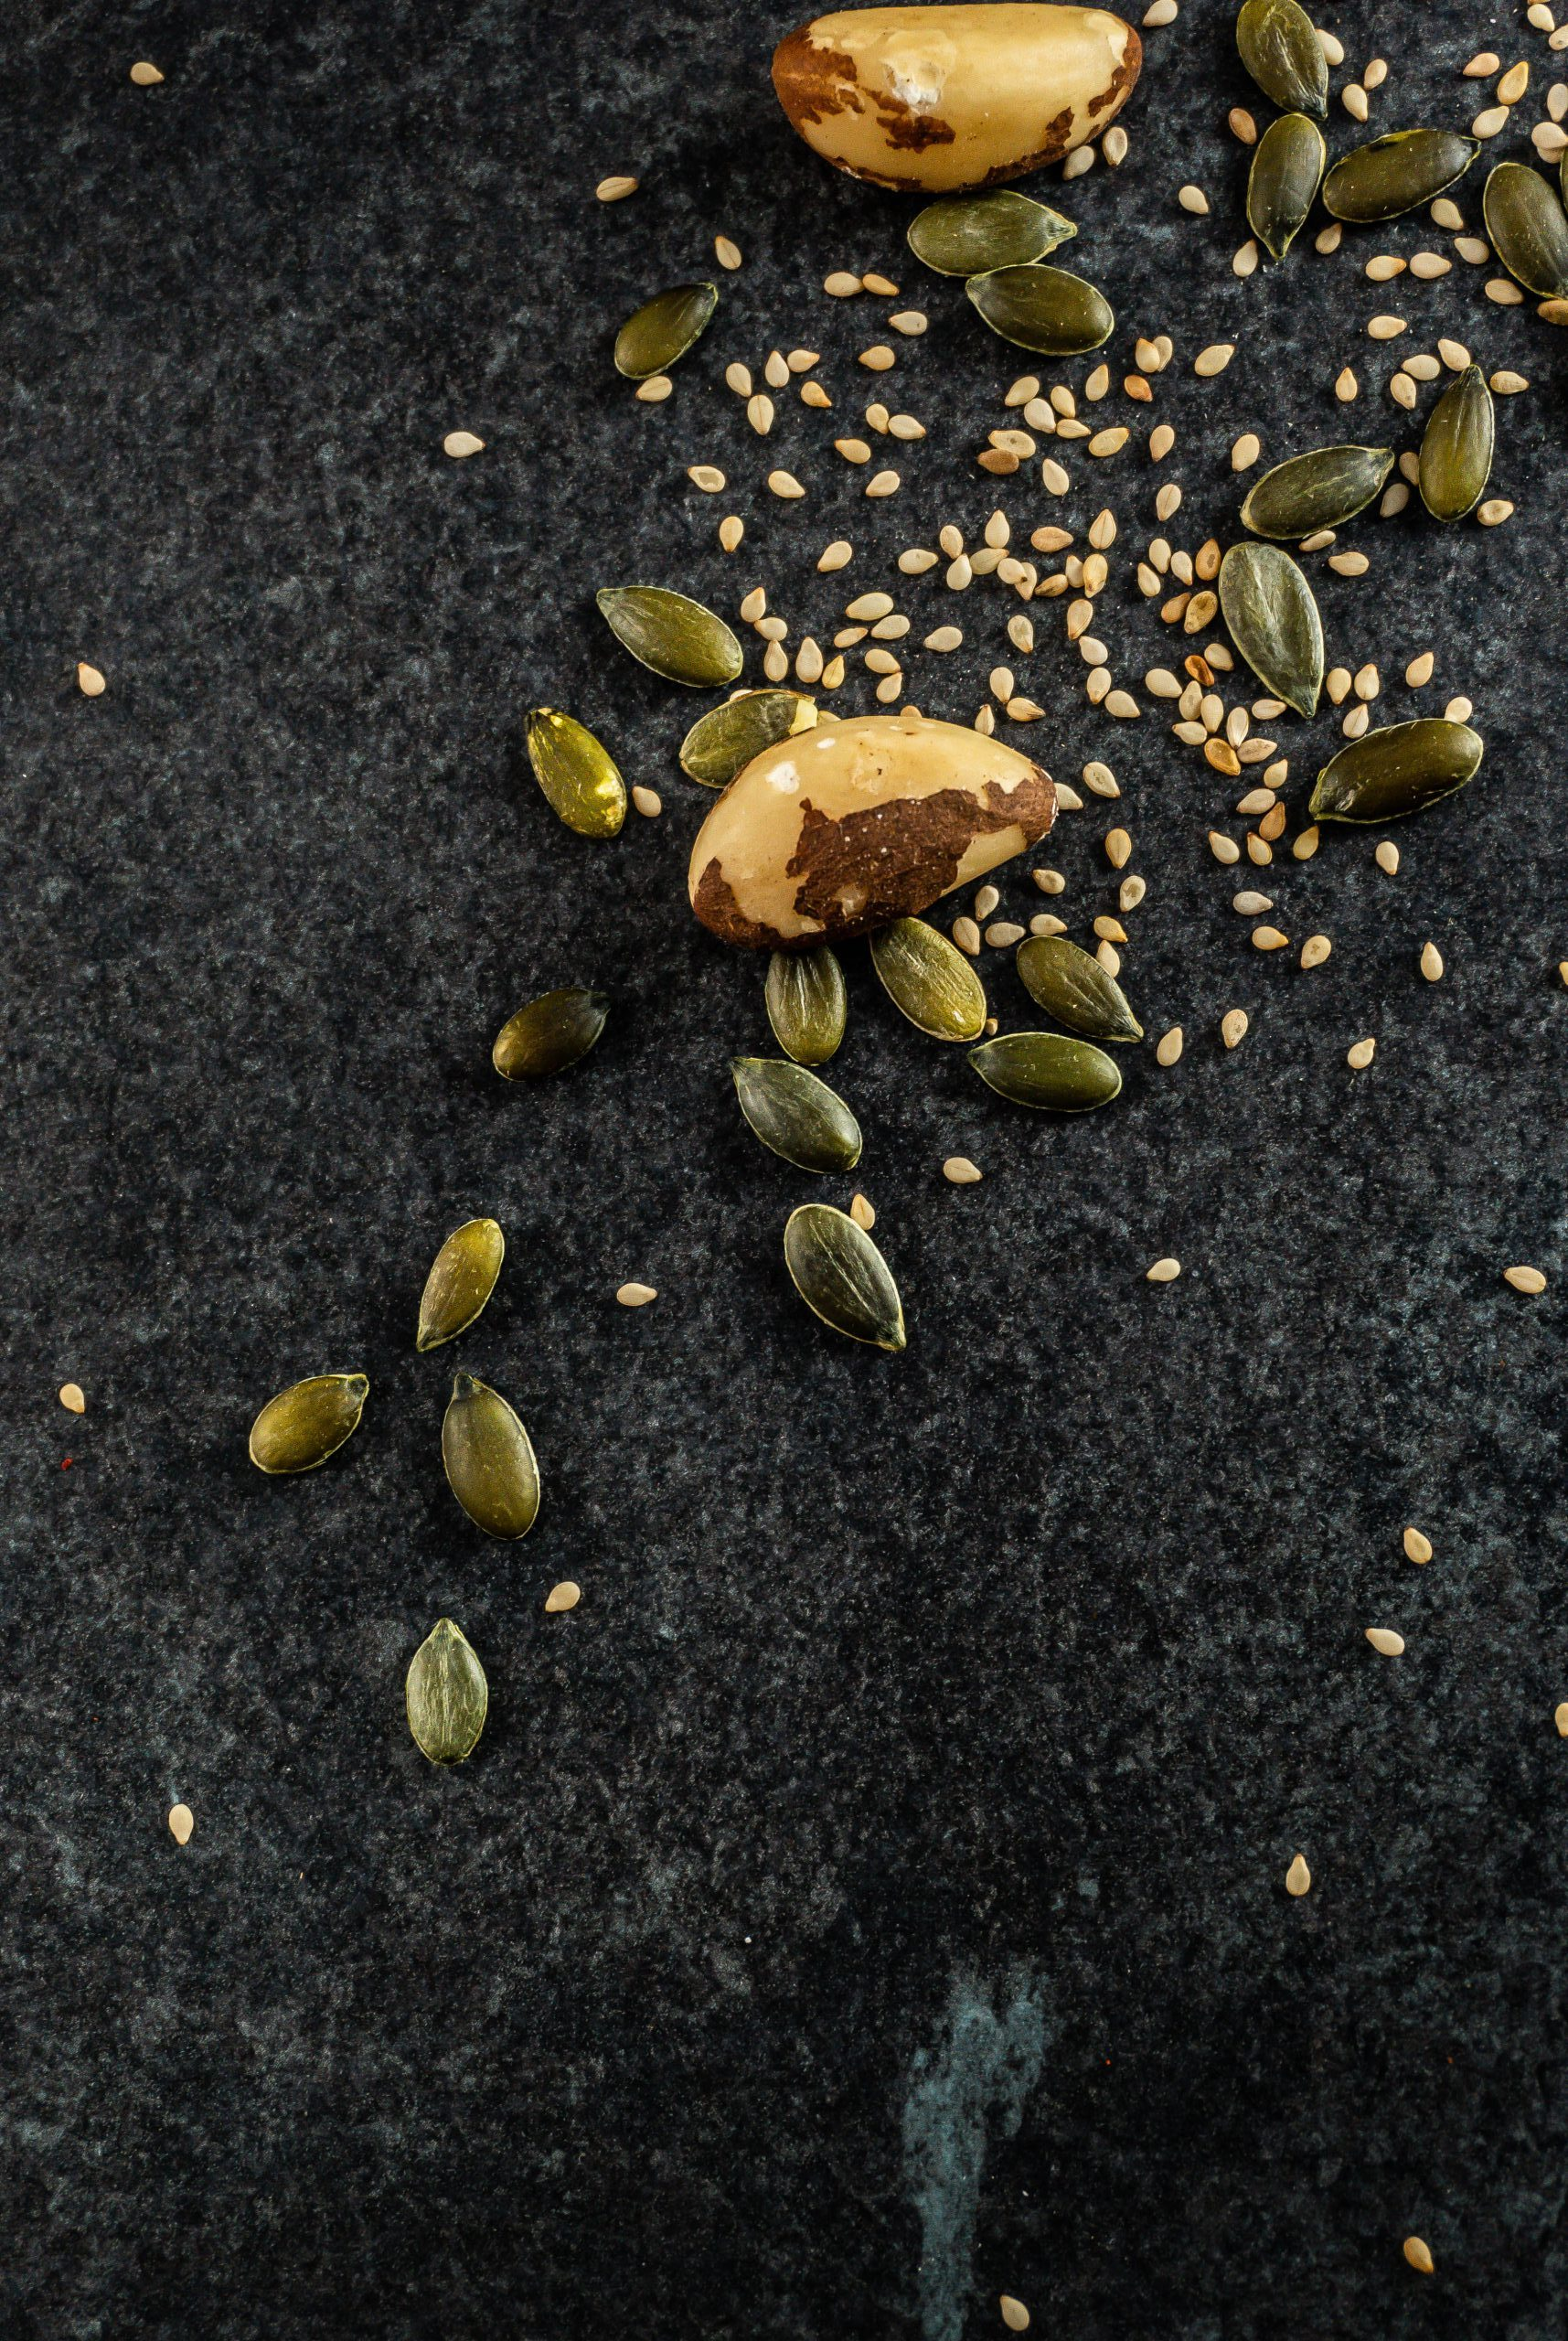 Pumpkin seeds surrounded by sesame seeds and brazil nuts